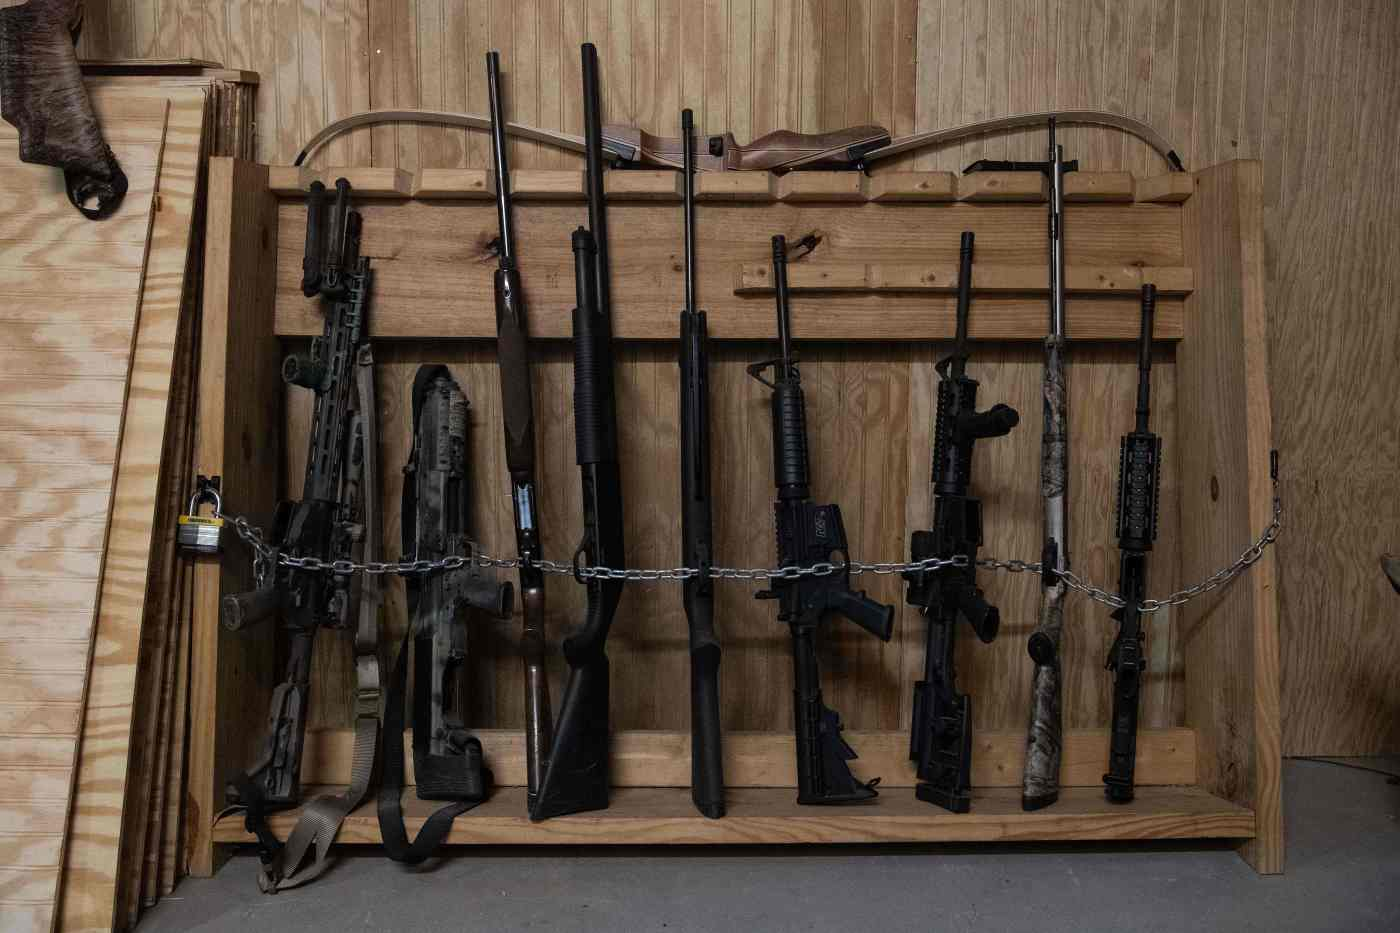 Guns are seen inside a lodging at the Fortitude Ranch in Mathias, West Virginia